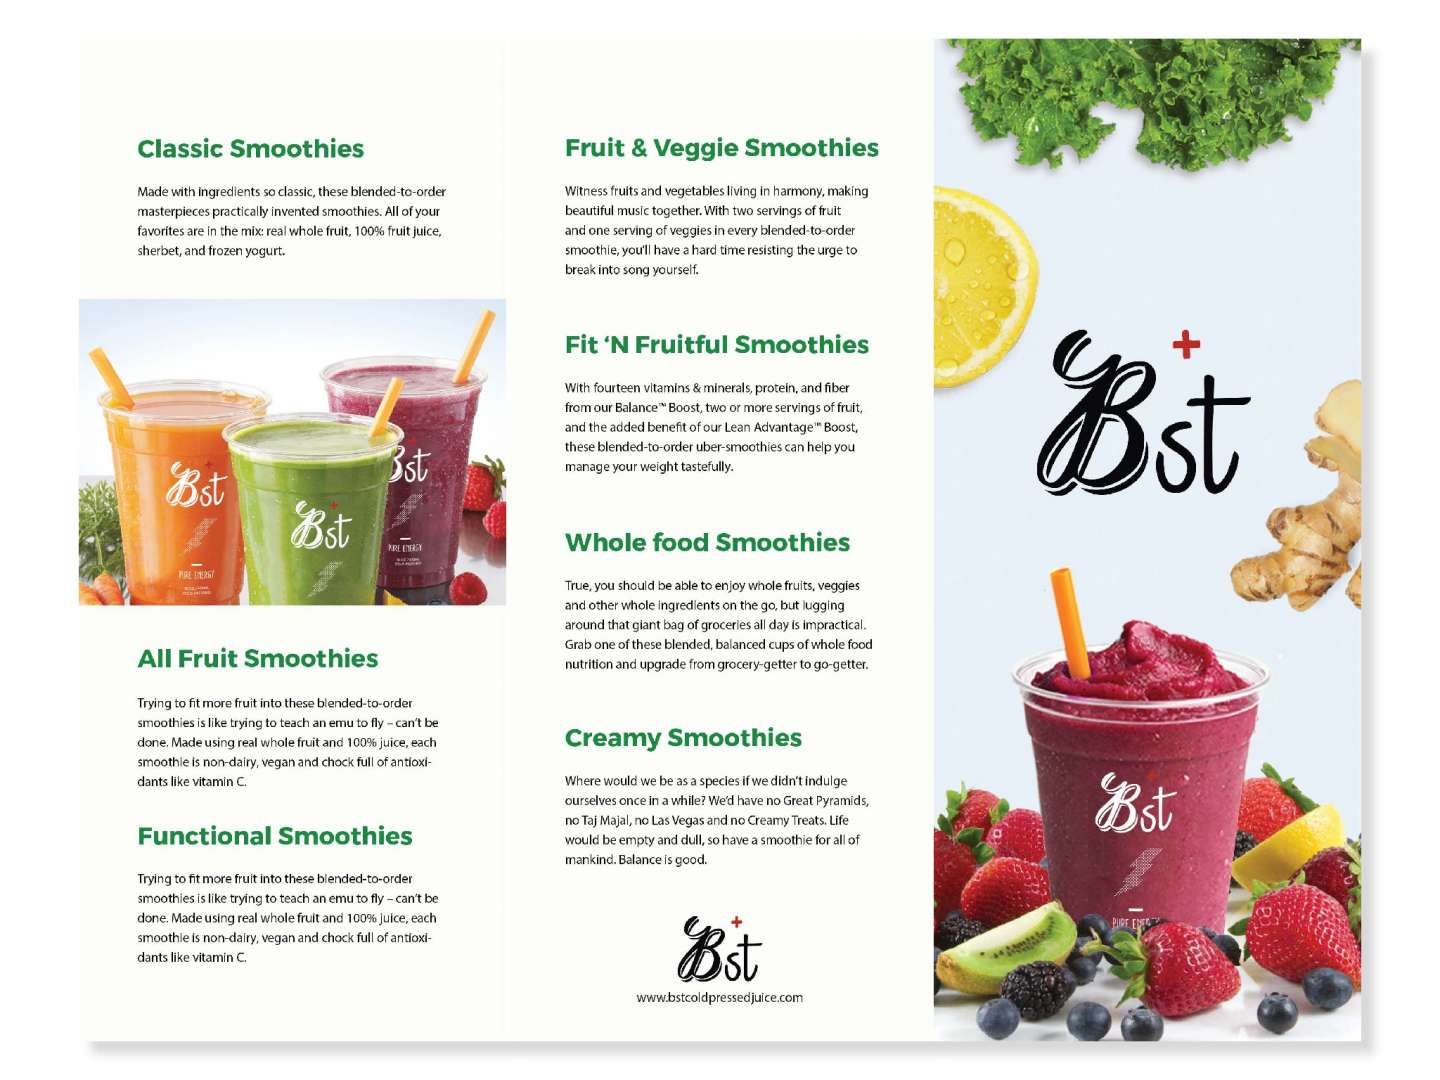 Bst Cold Pressed Juice Branding by Joowon Ahn – SVA Design